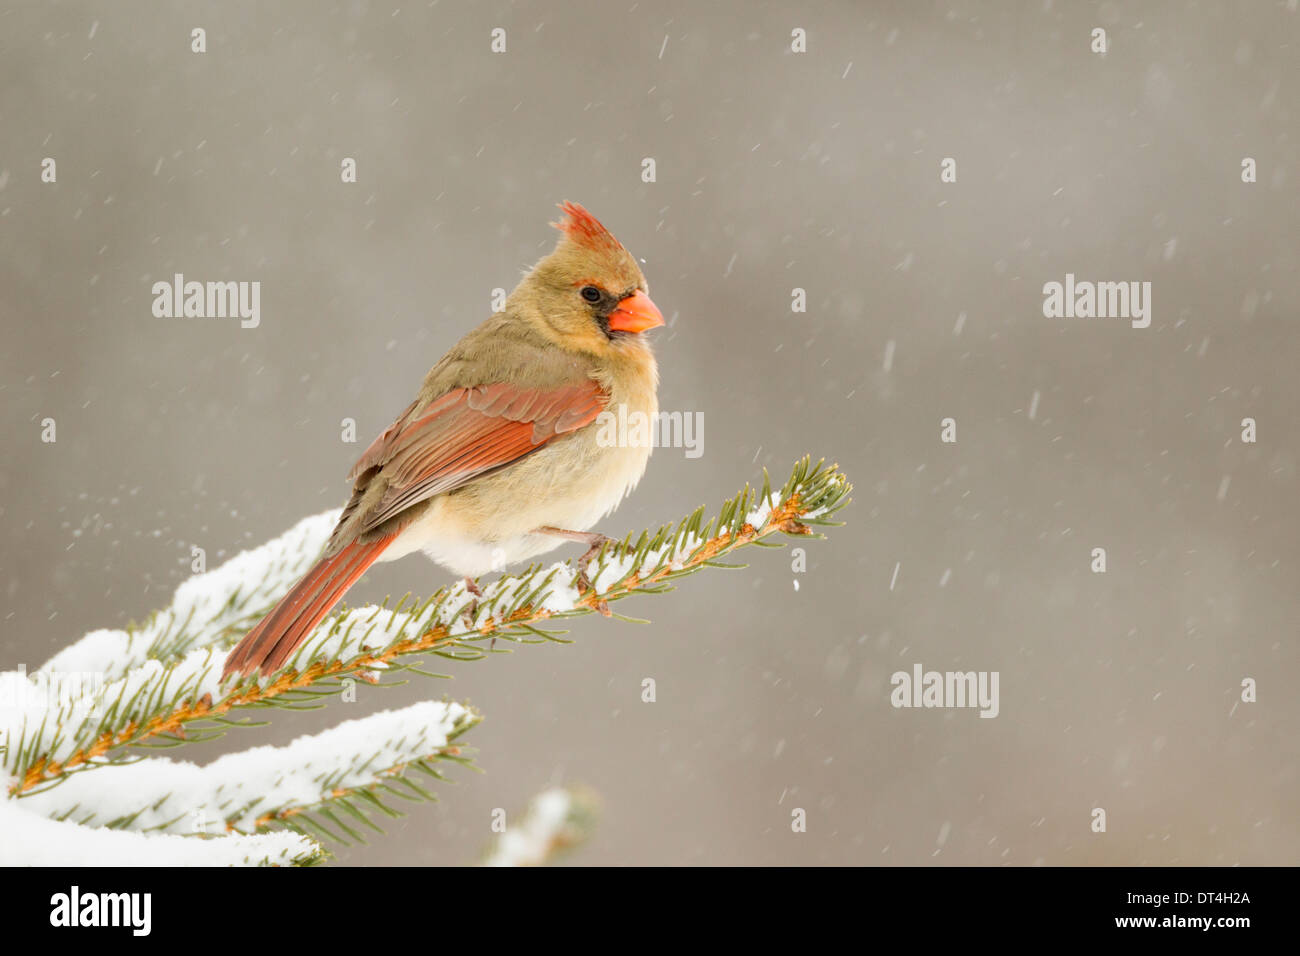 Female Cardinal in snow storm - Stock Image